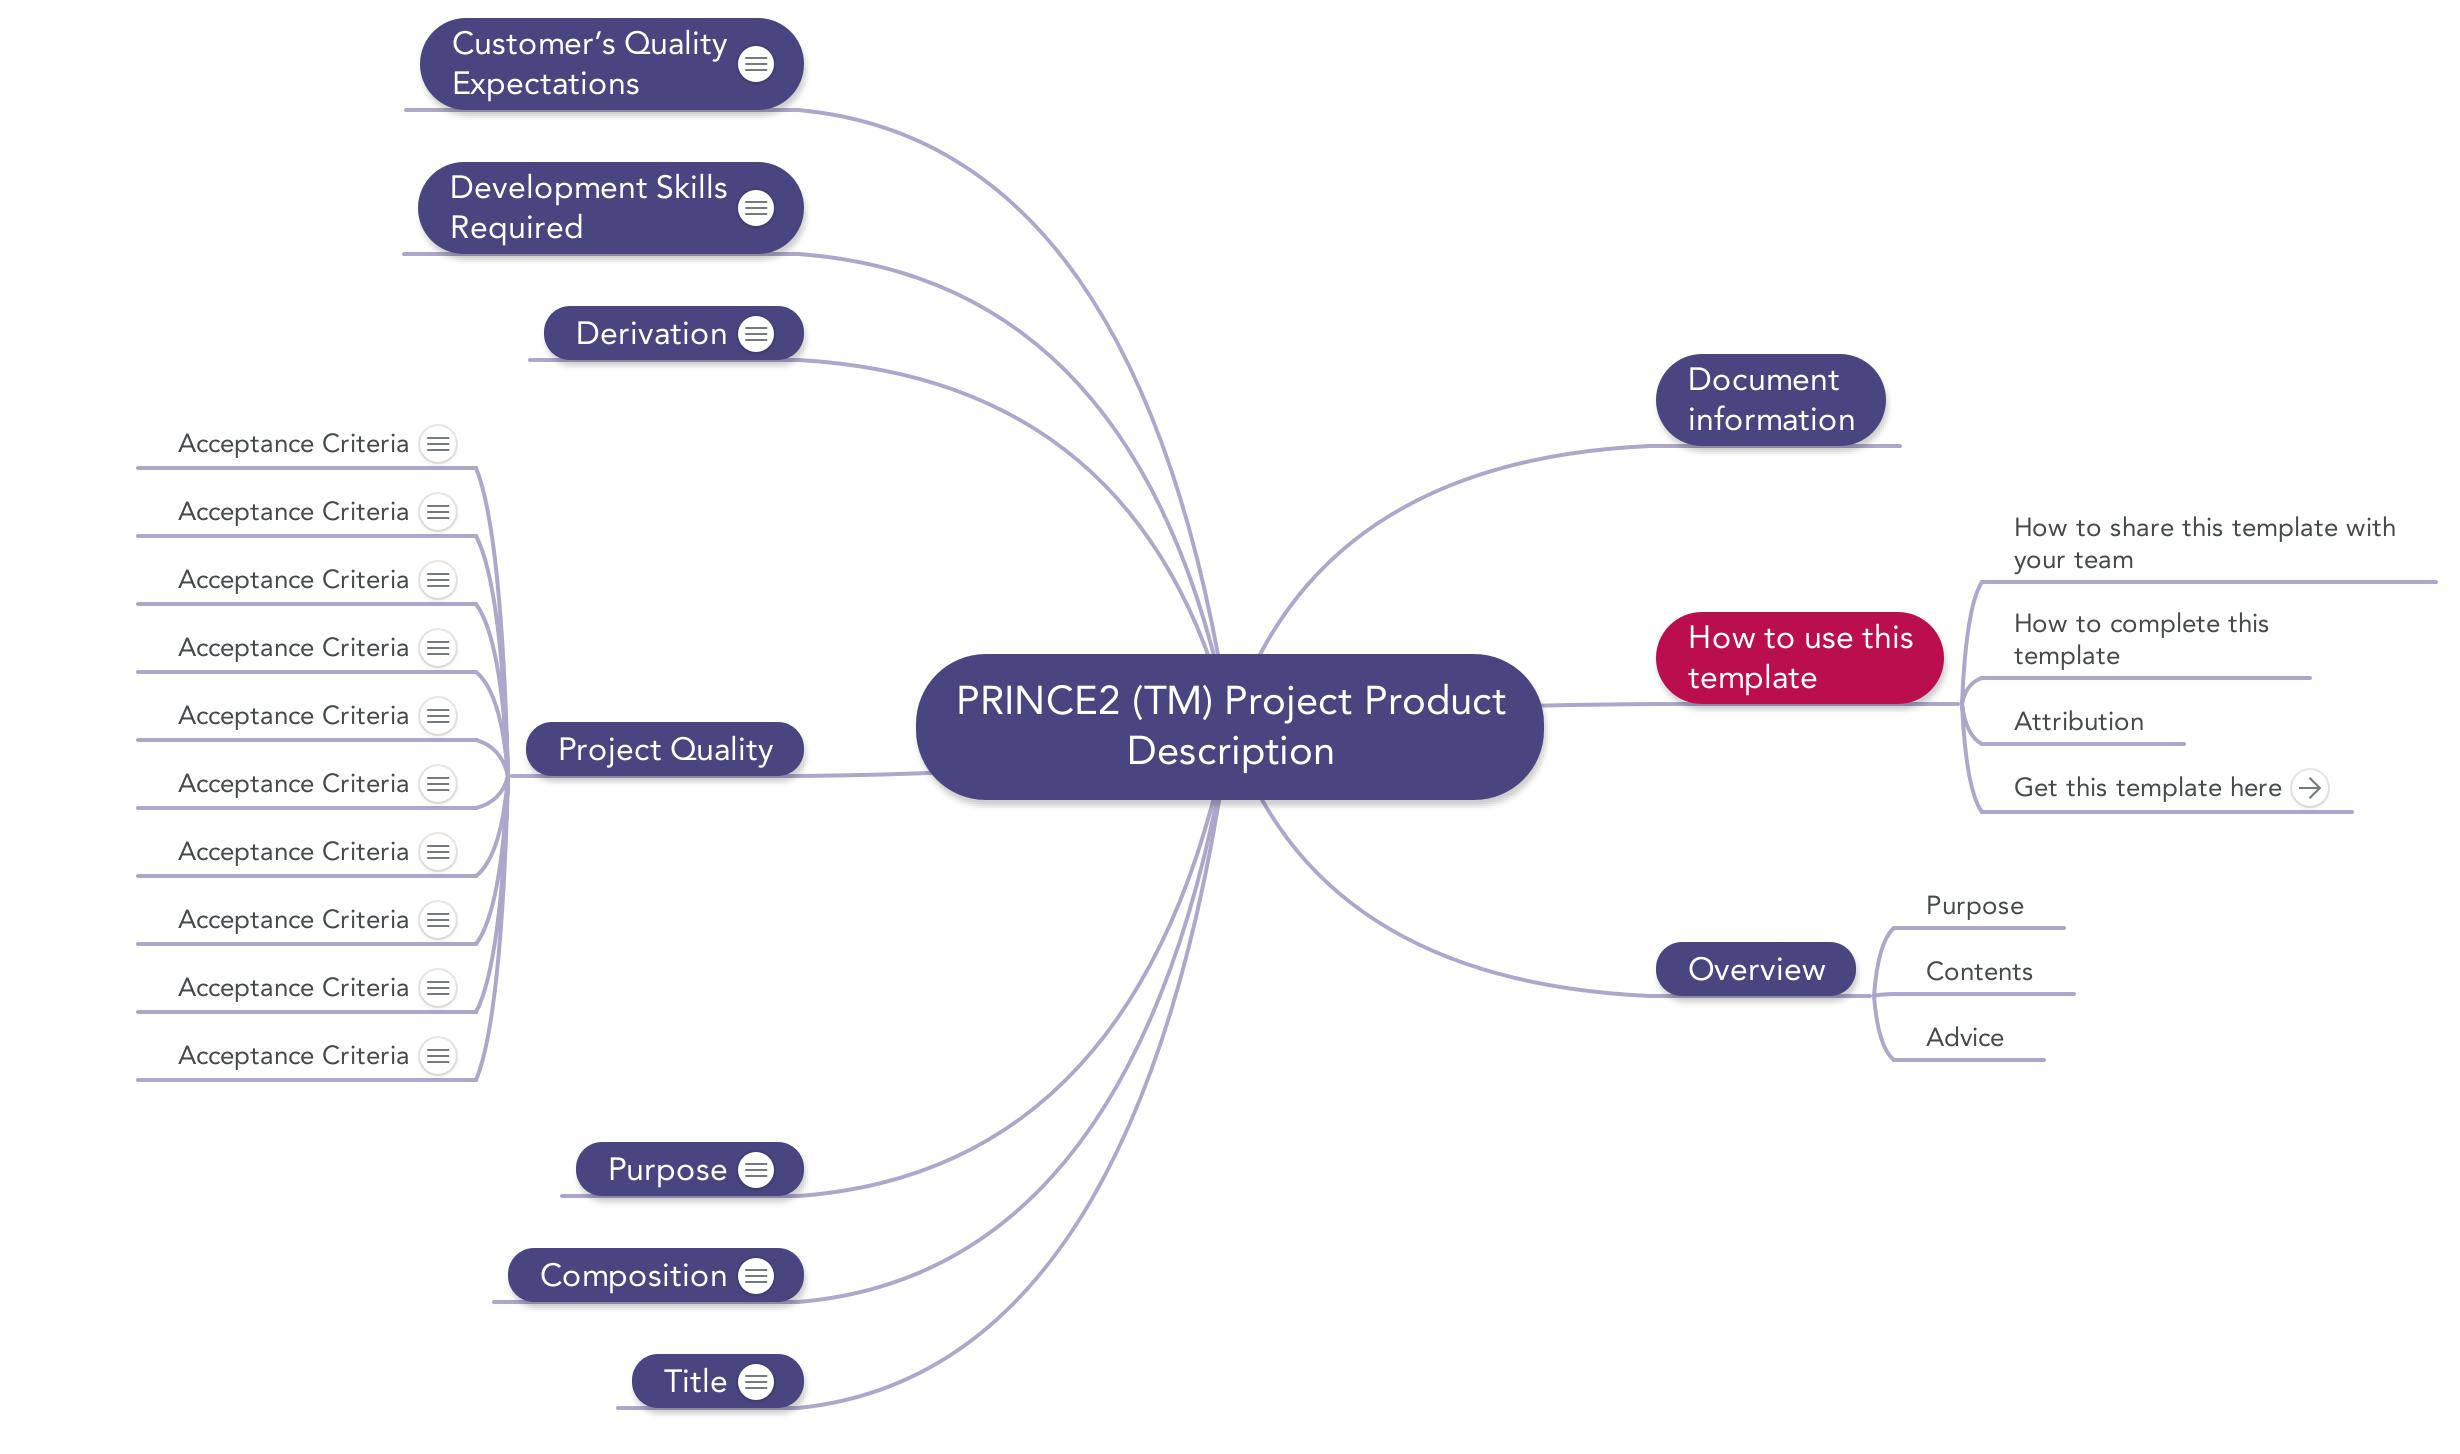 prince2 process flow diagram 2010    prince2 process flow diagram 2010    wiring library     prince2 process flow diagram 2010    wiring library